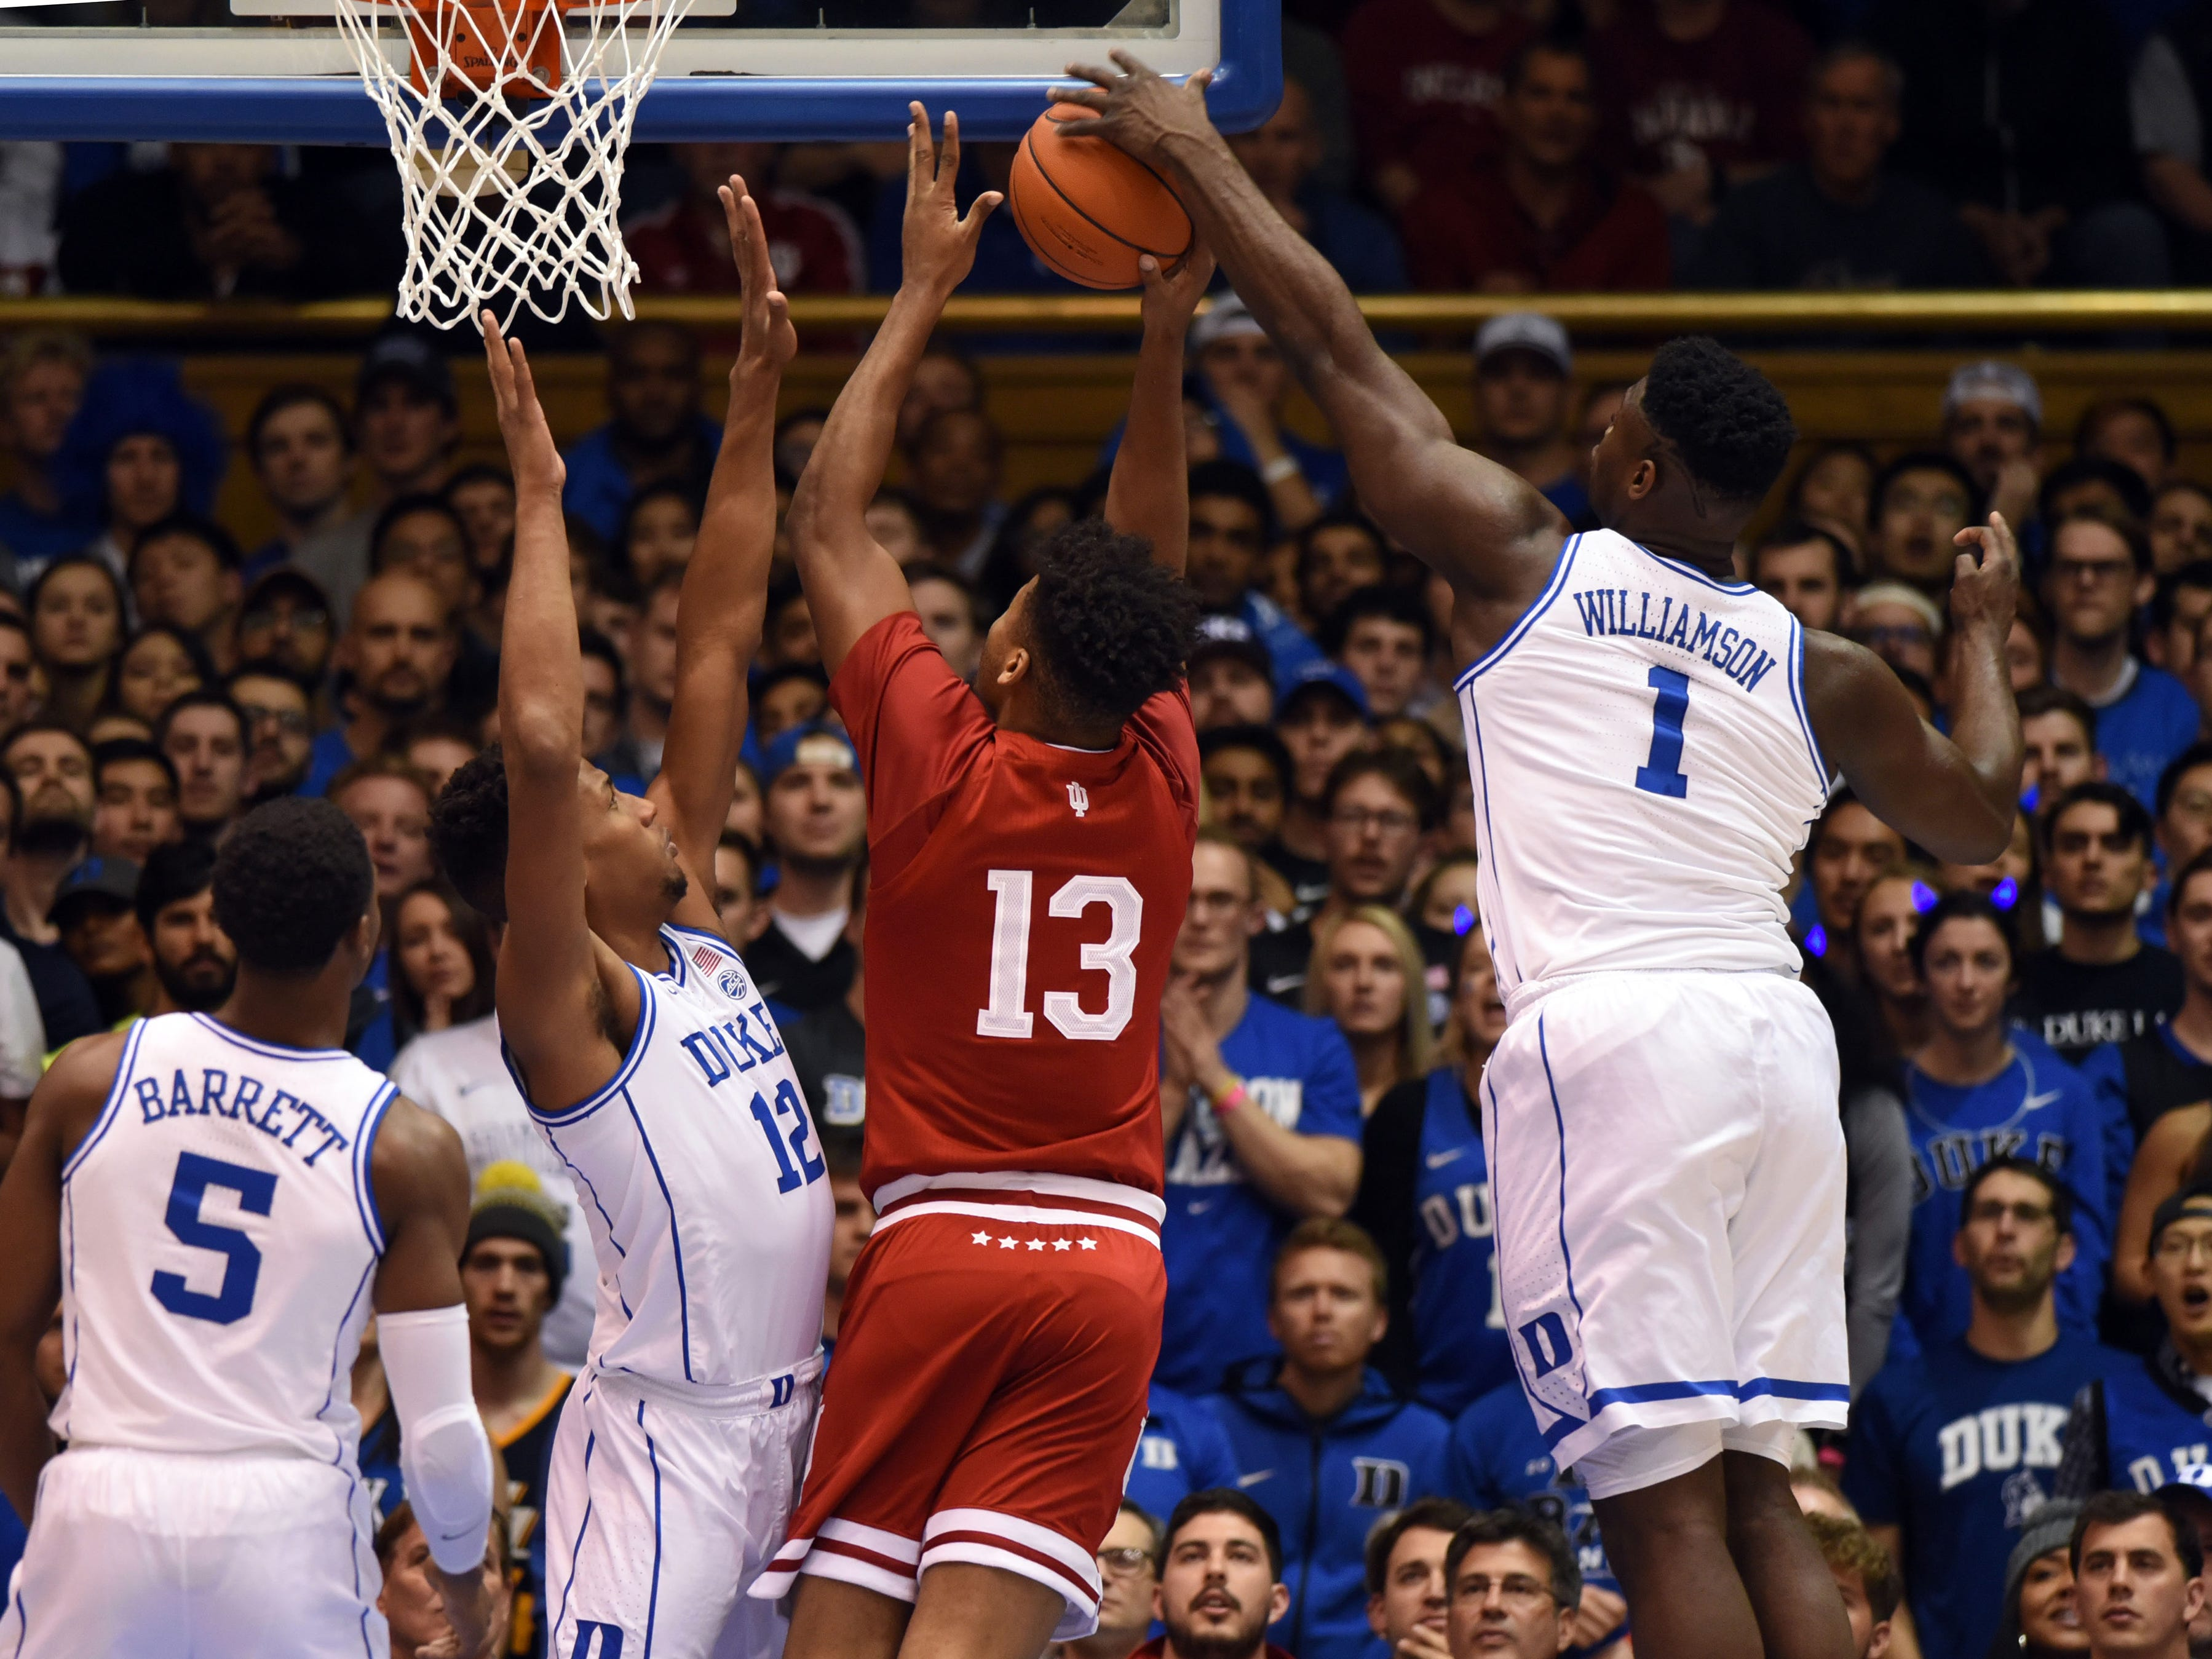 Duke Blue Devils forward Zion Williamson (1) blocks the shot of Indiana Hoosiers forward Juwan Morgan (13) during the first half at Cameron Indoor Stadium.